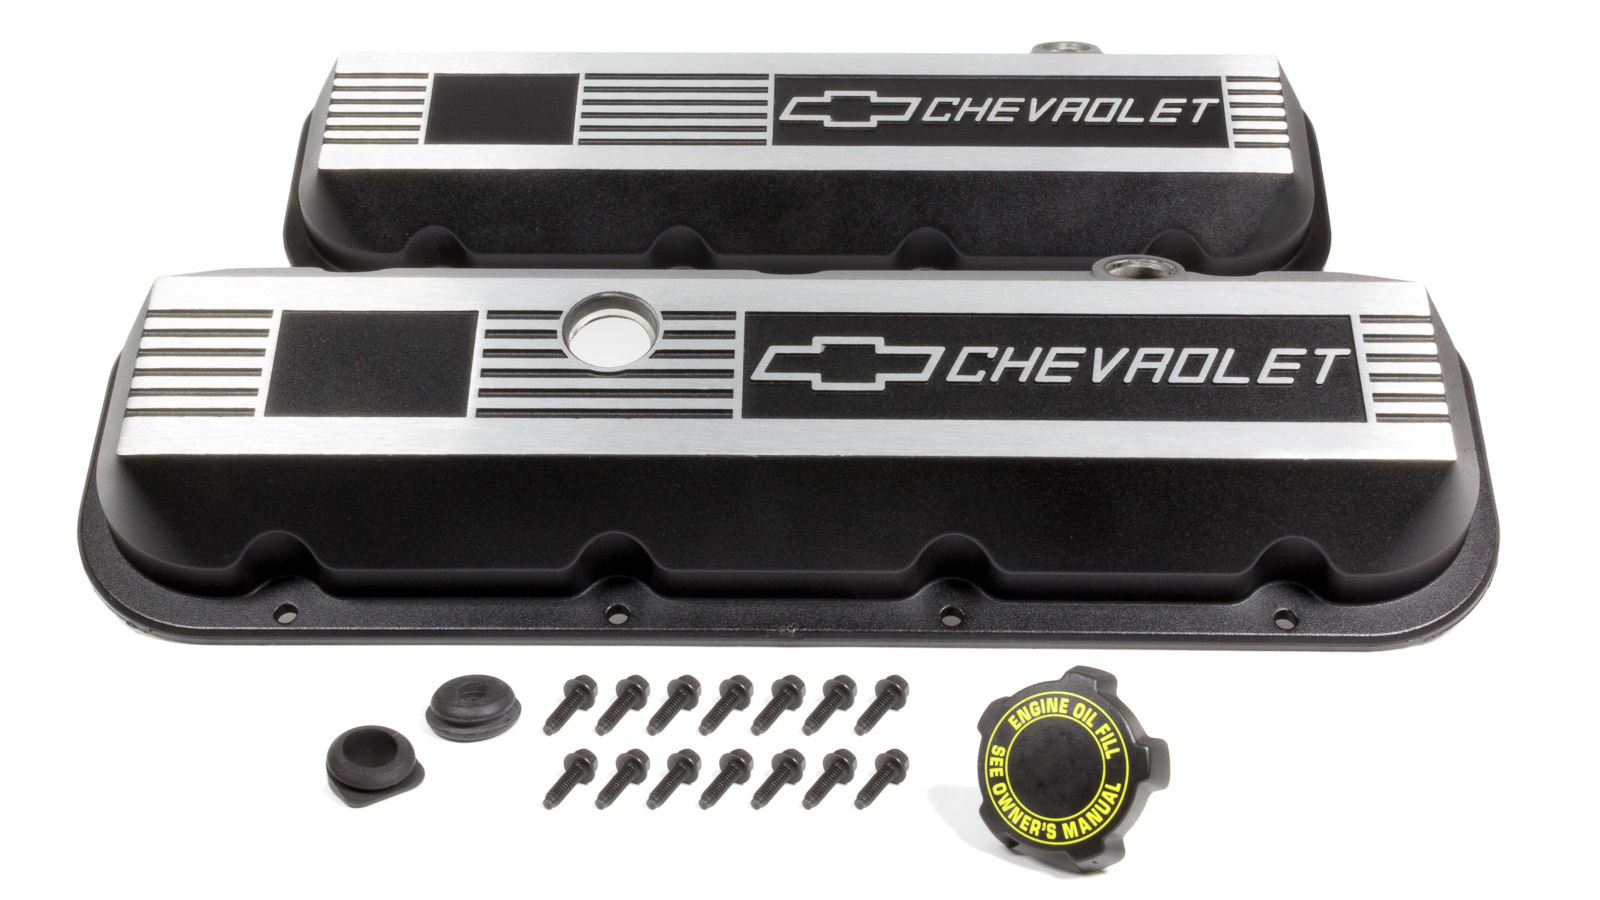 CHEVROLET PERFORMANCE Aluminum Valve Covers - BBC- Short